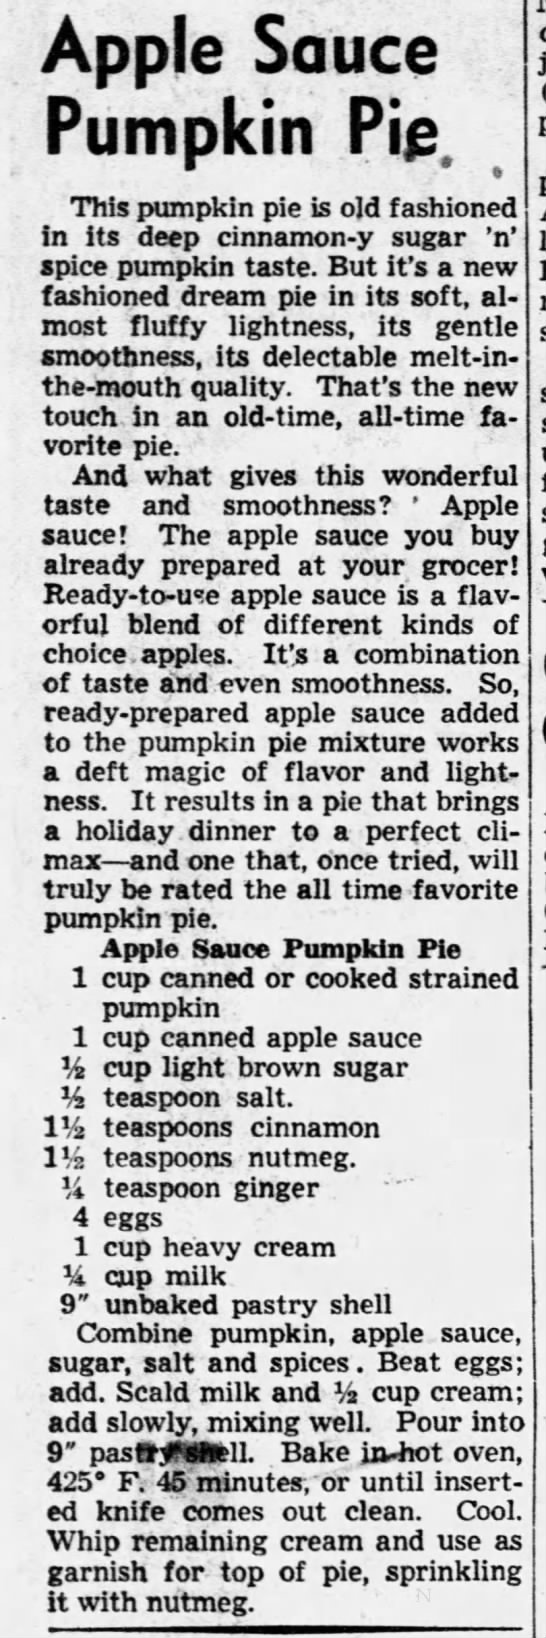 1951 recipe for Apple Sauce Pumpkin Pie with heavy cream -